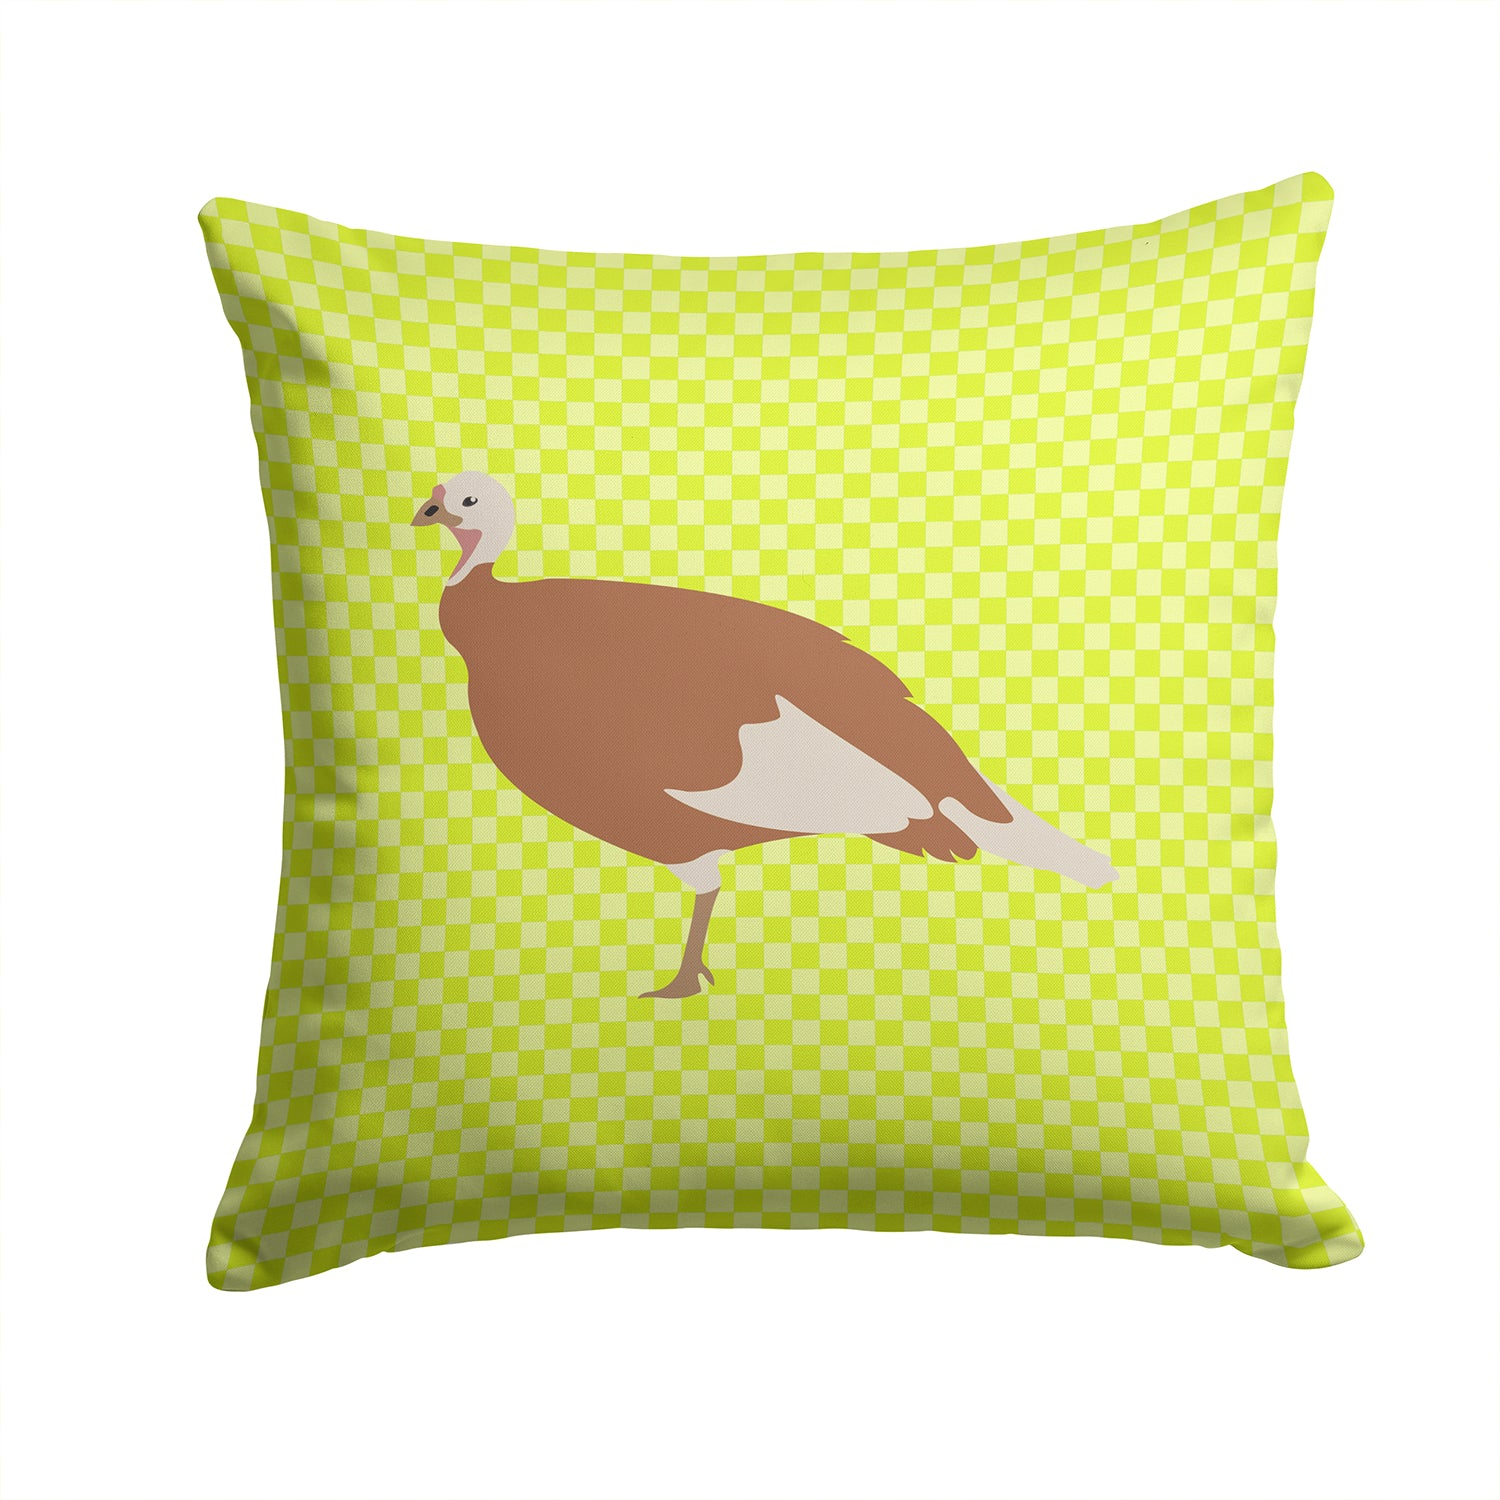 Jersey Buff Turkey Hen Green Fabric Decorative Pillow BB7810PW1414 by Caroline's Treasures